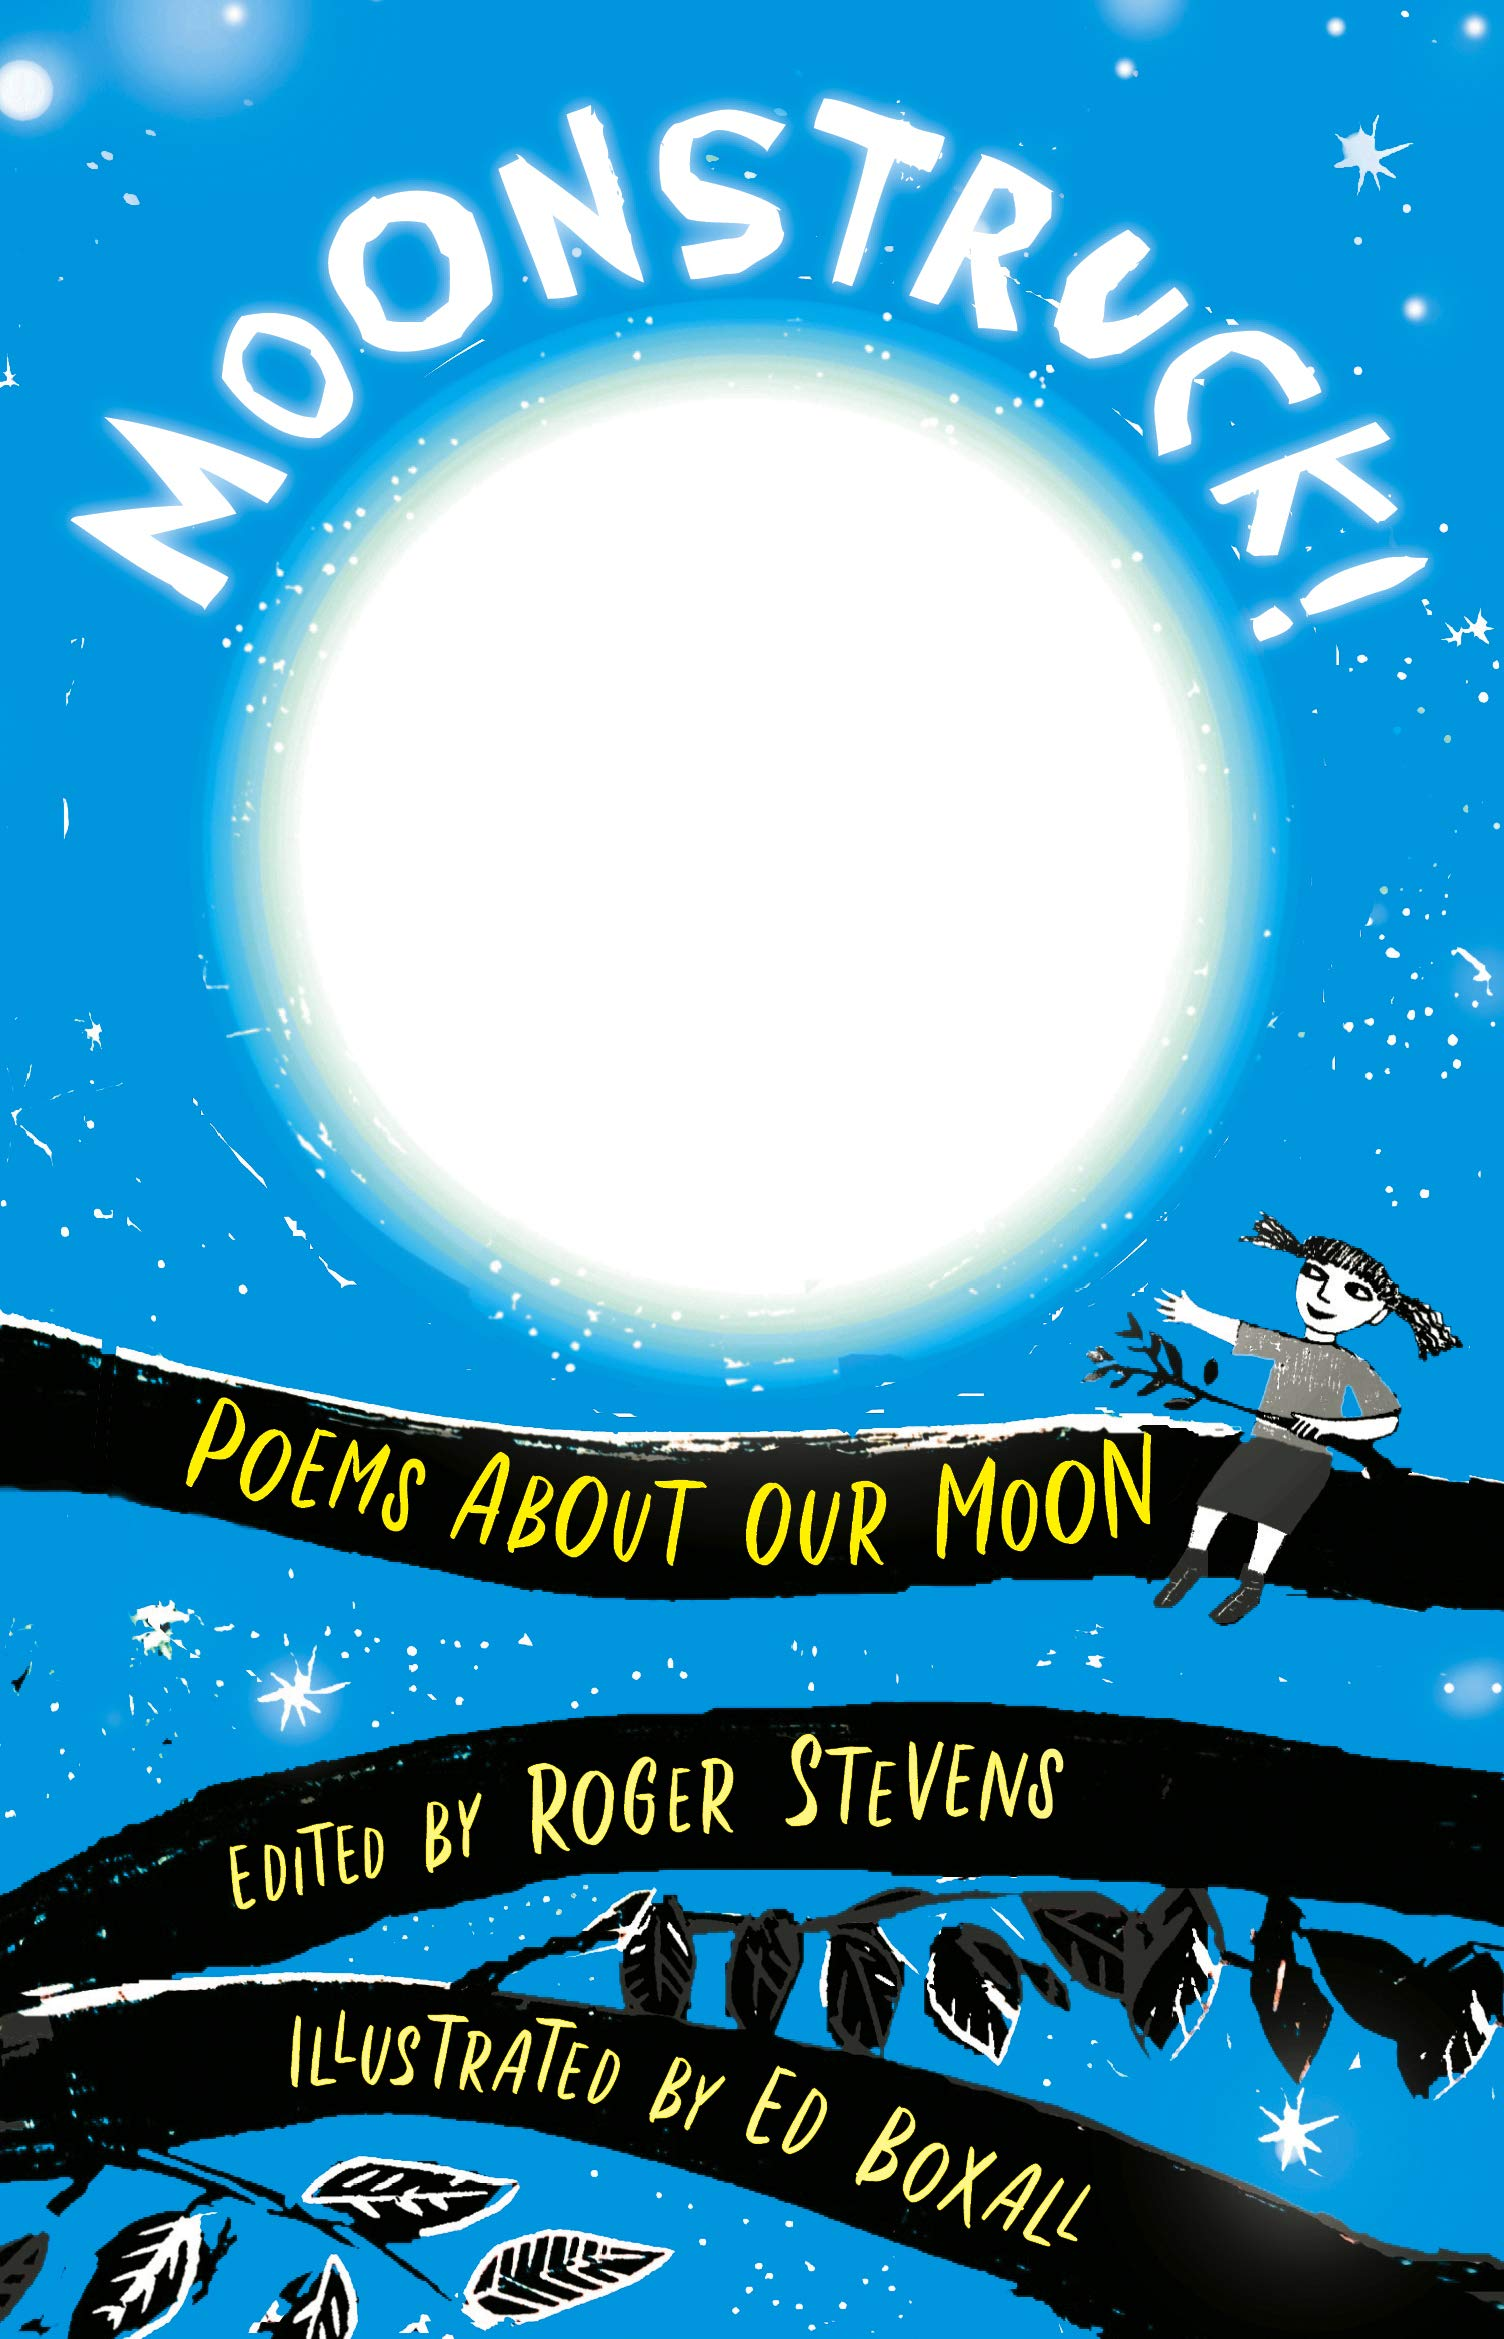 """- Moonstruck!June 2019Jay has contributed one poem - """"You"""" to this anthology of poems about the moon, celebrating the 50th anniversary of the Moon Landing.Published by Otter-Barry Books"""